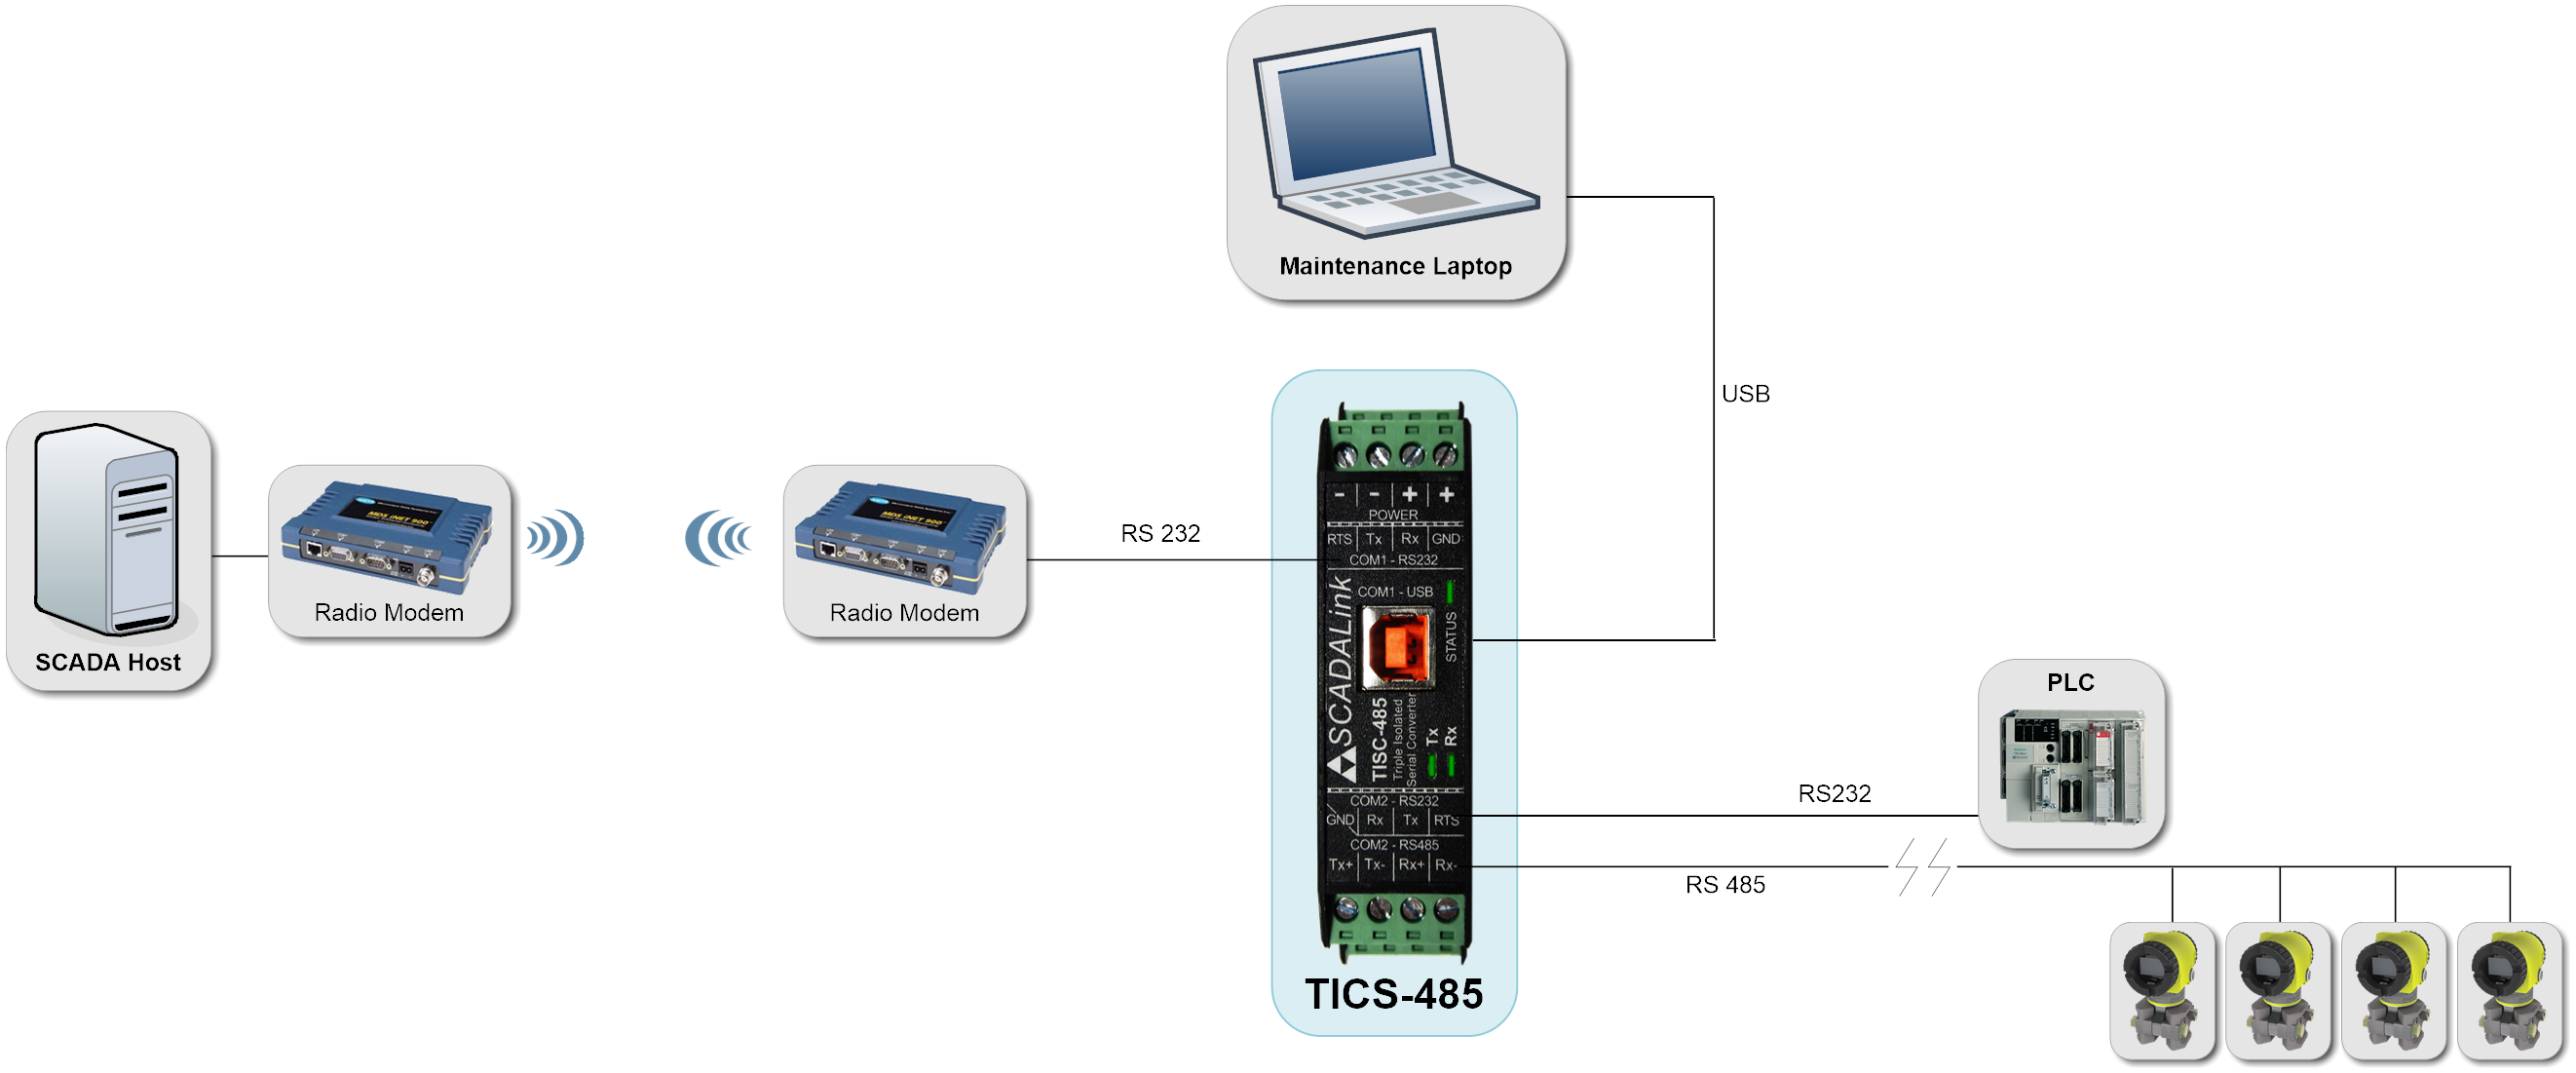 Scadalink Rs232 To Rs485 Converter Class I Div 2 Ethernet Rs 485 2wire Pinout Diagram Tisc Web Simultaneous Isolated